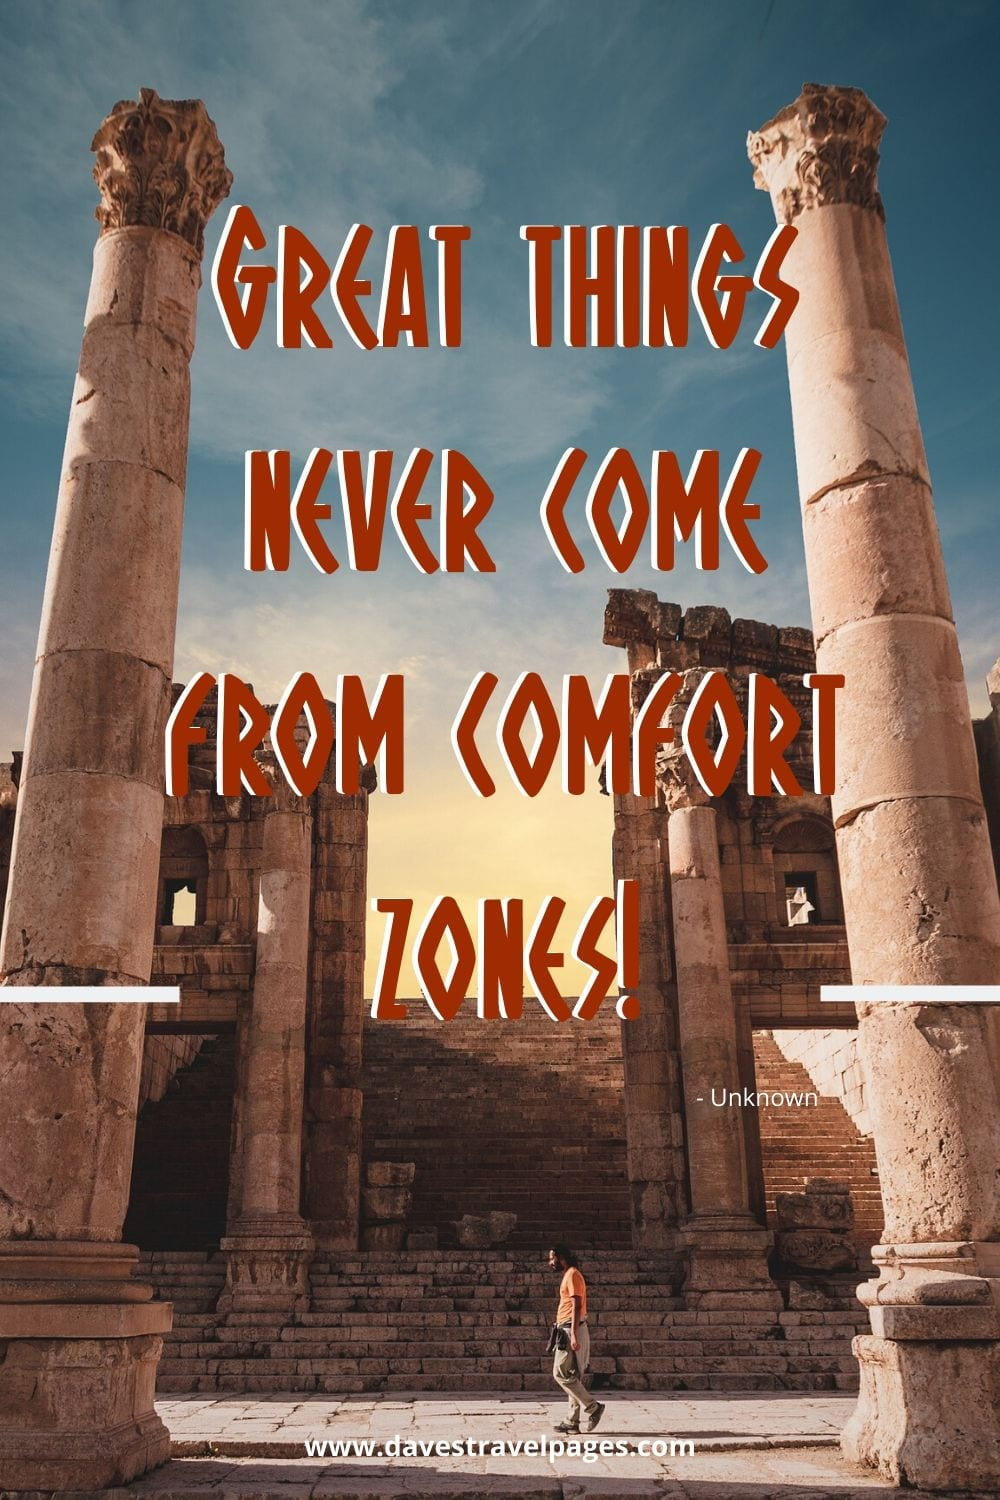 Adventure Quotes - Great things never come from comfort zones!